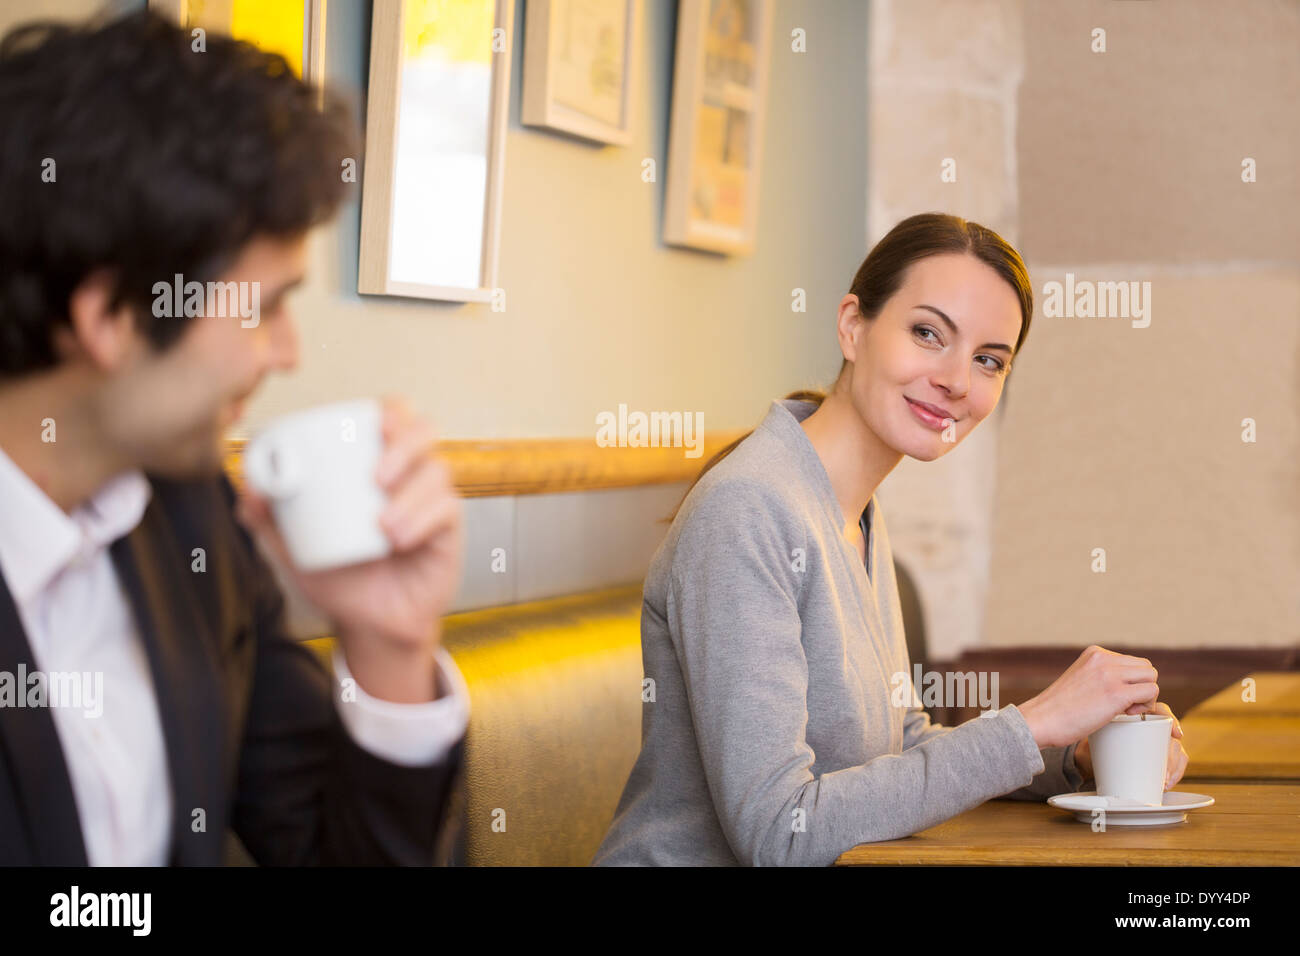 Woman man smiling restaurant love date - Stock Image